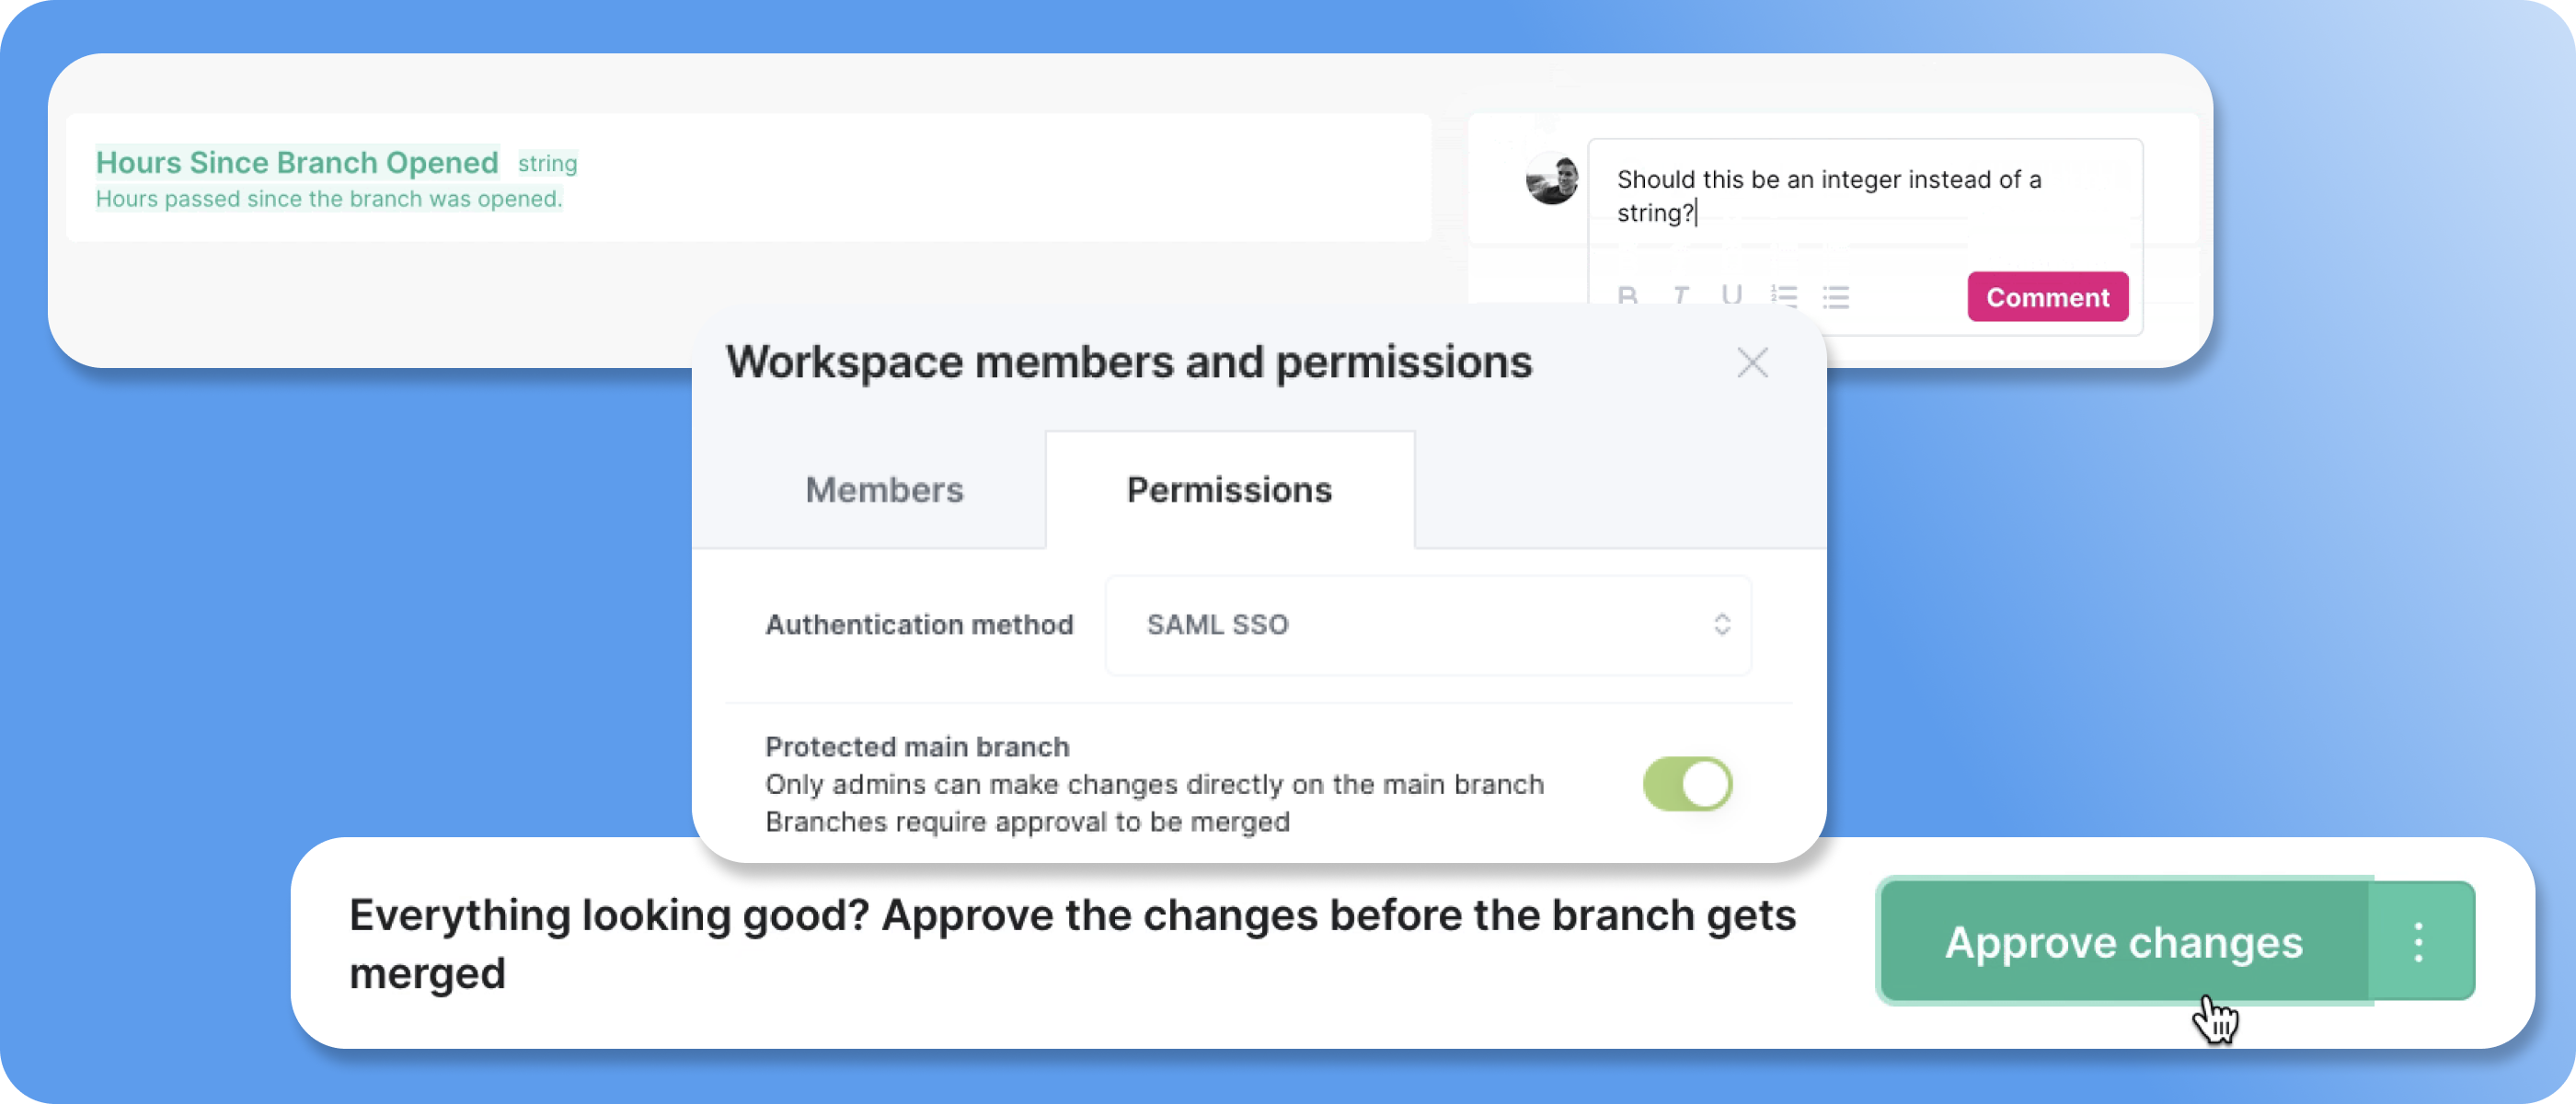 Introducing Approval Workflows